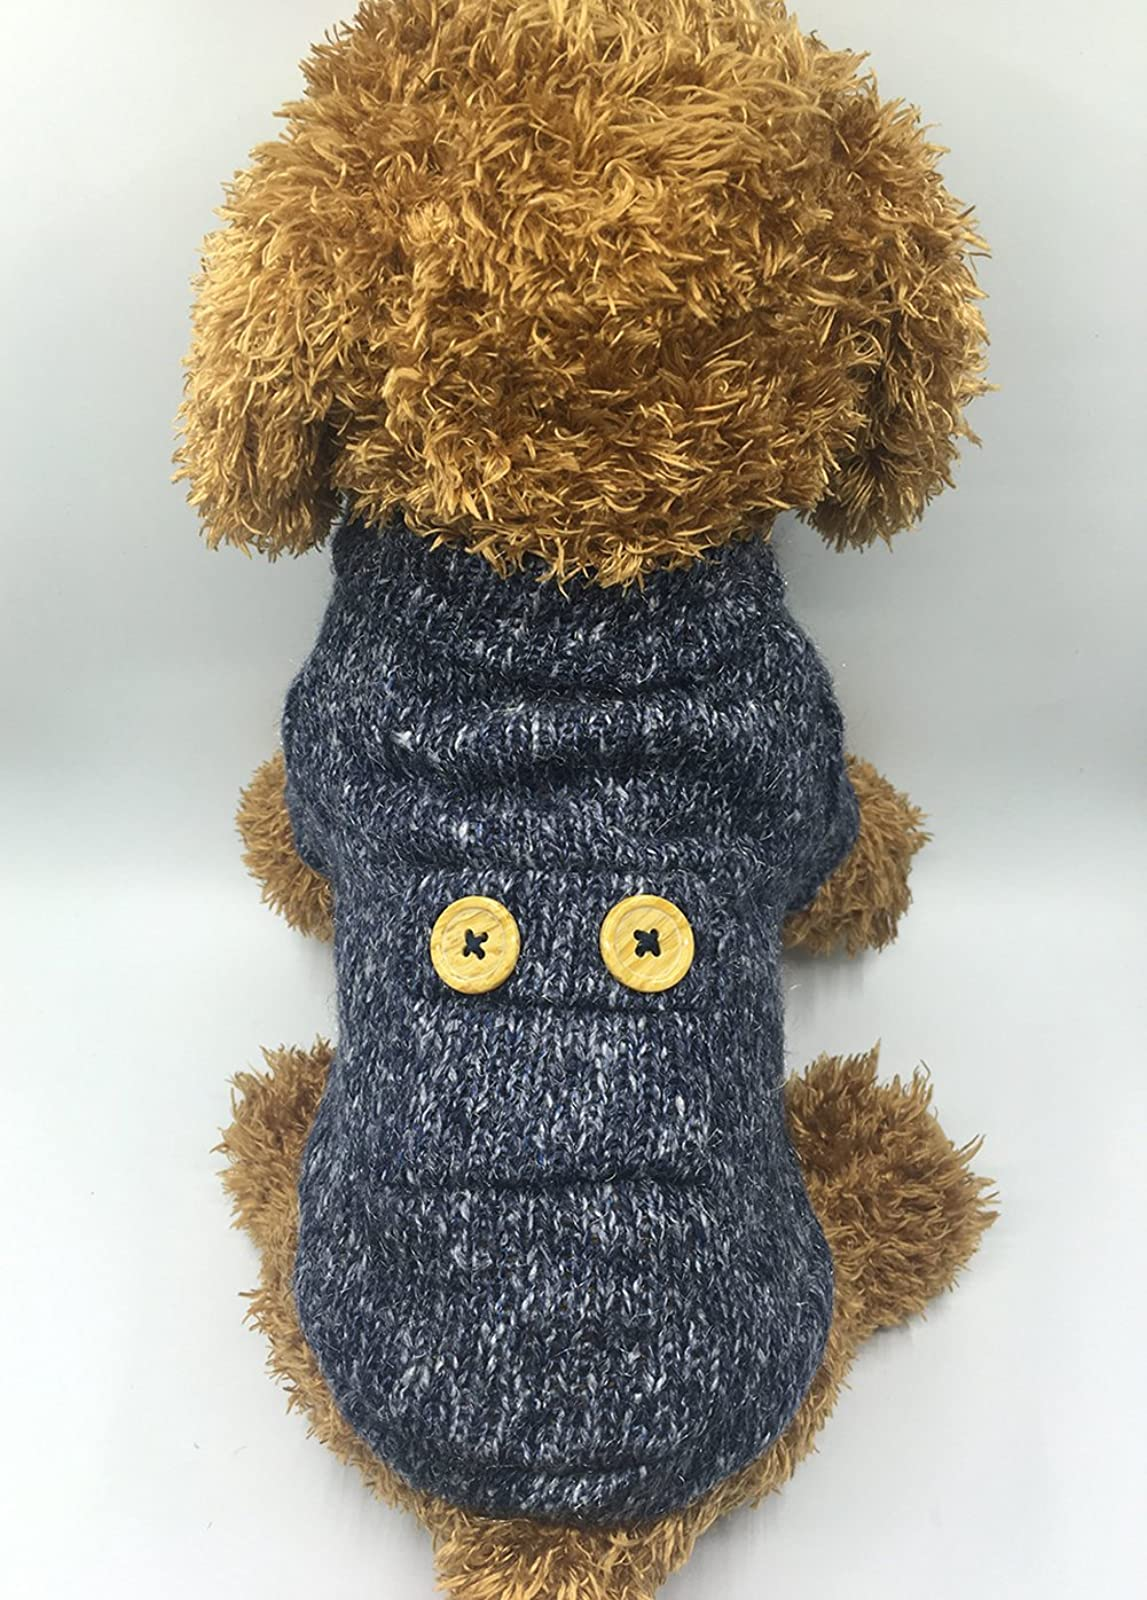 EastCities Pet SweatersSmall Dogs Cats Clothes Puppy - 3